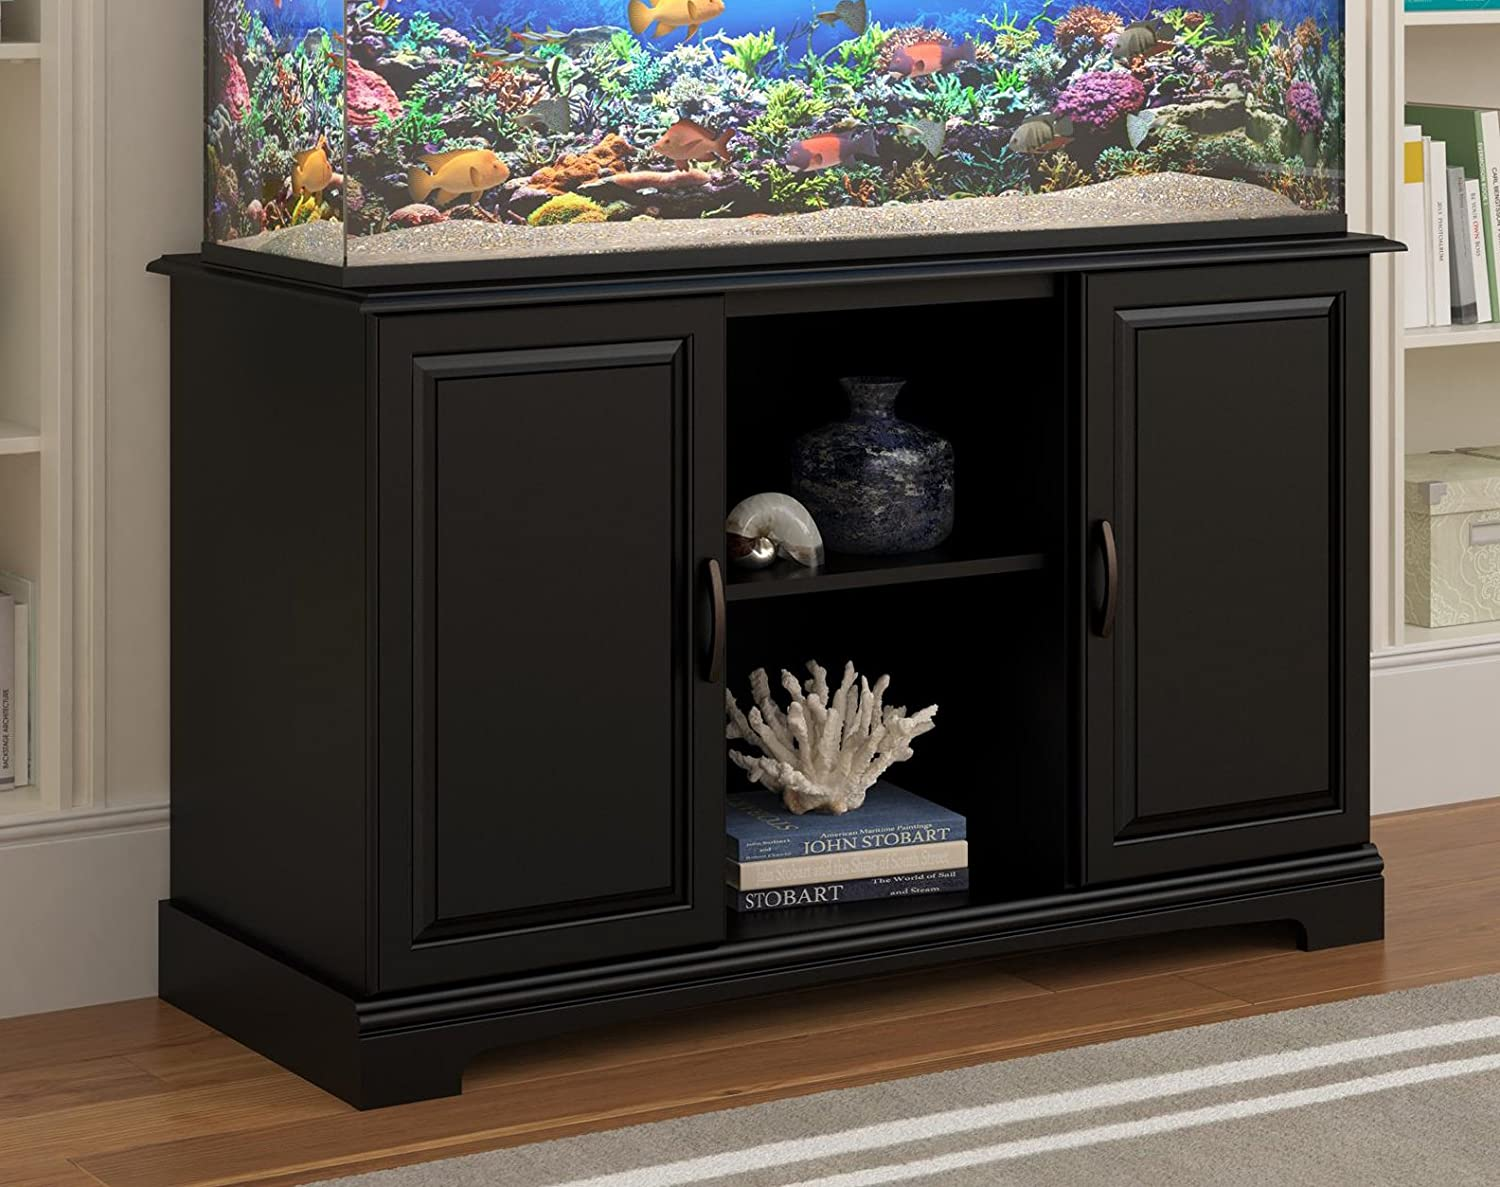 Amazon.com : Ameriwood Home Harbor 29   37 Gallon Aquarium Stand, Black :  Pet Supplies